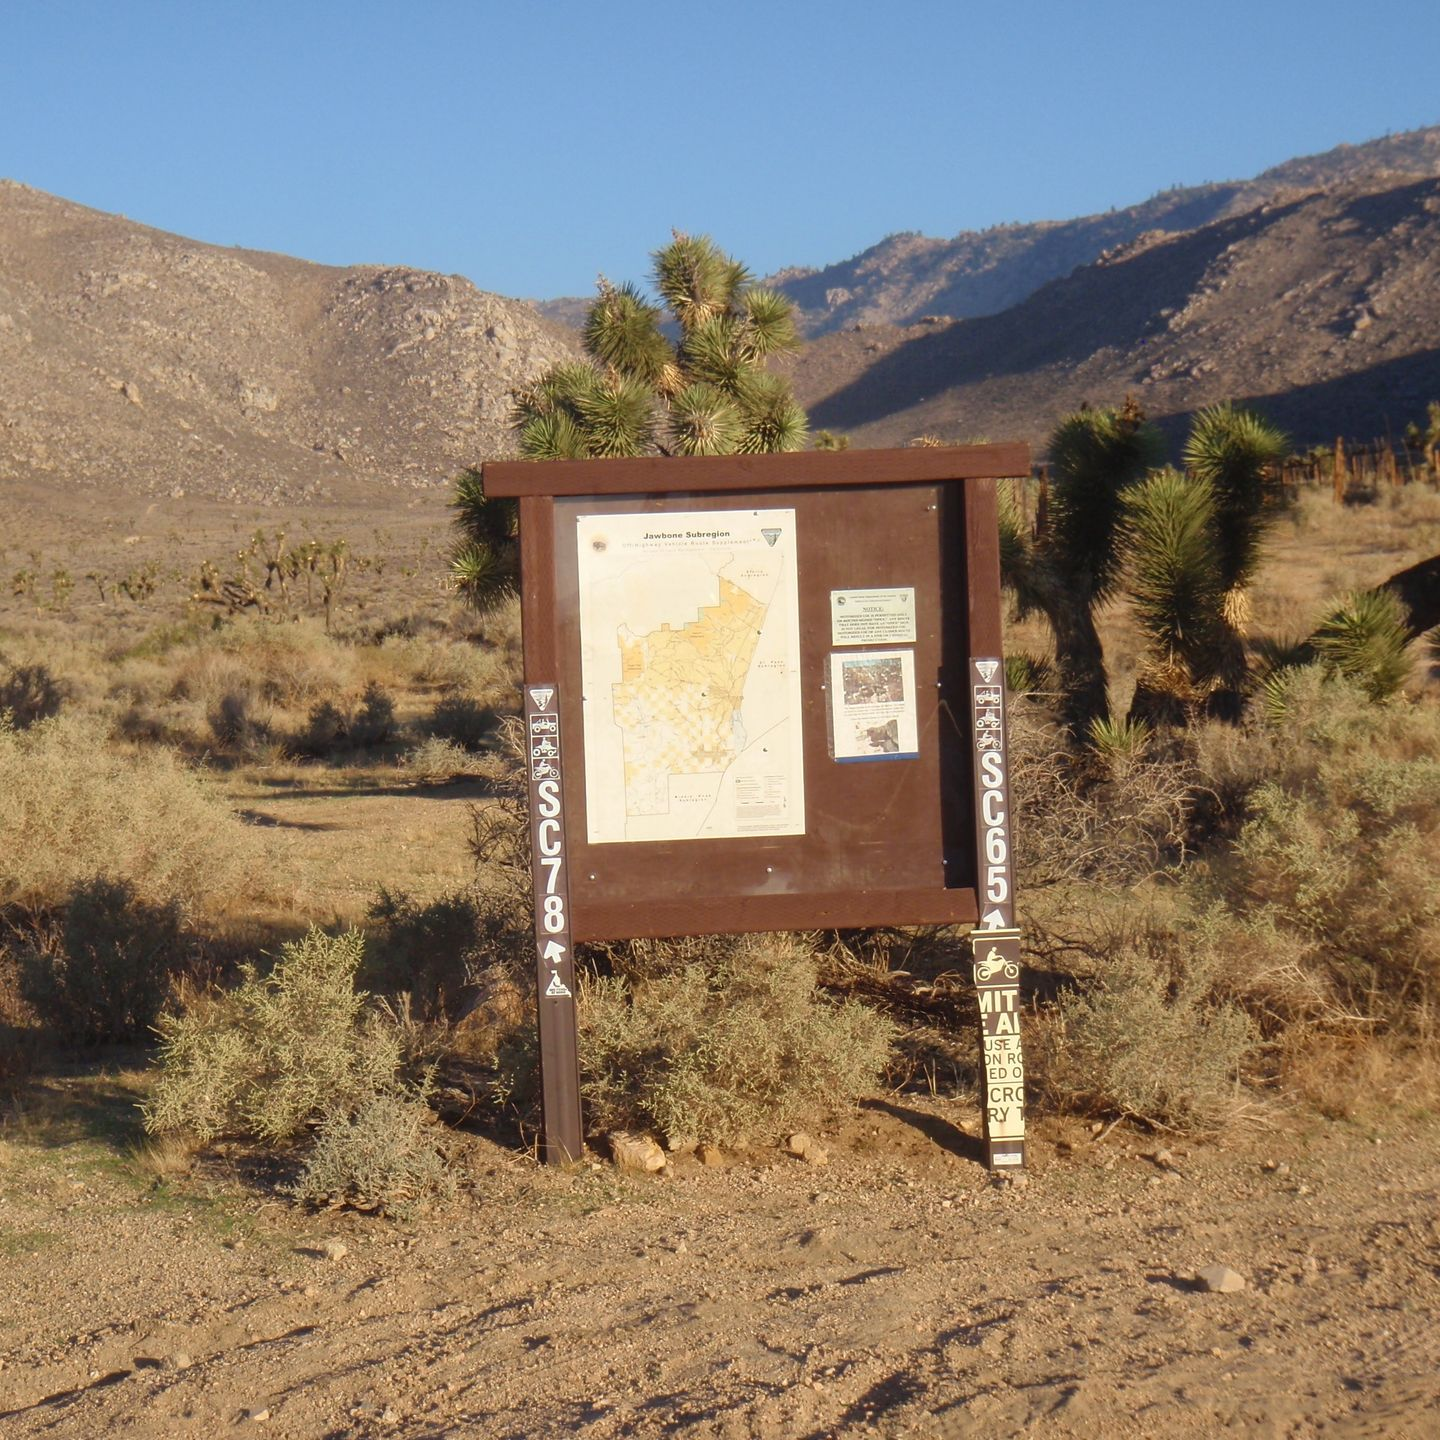 SC65 - McIvers Cabin - Waypoint 8: Intersection with SC78